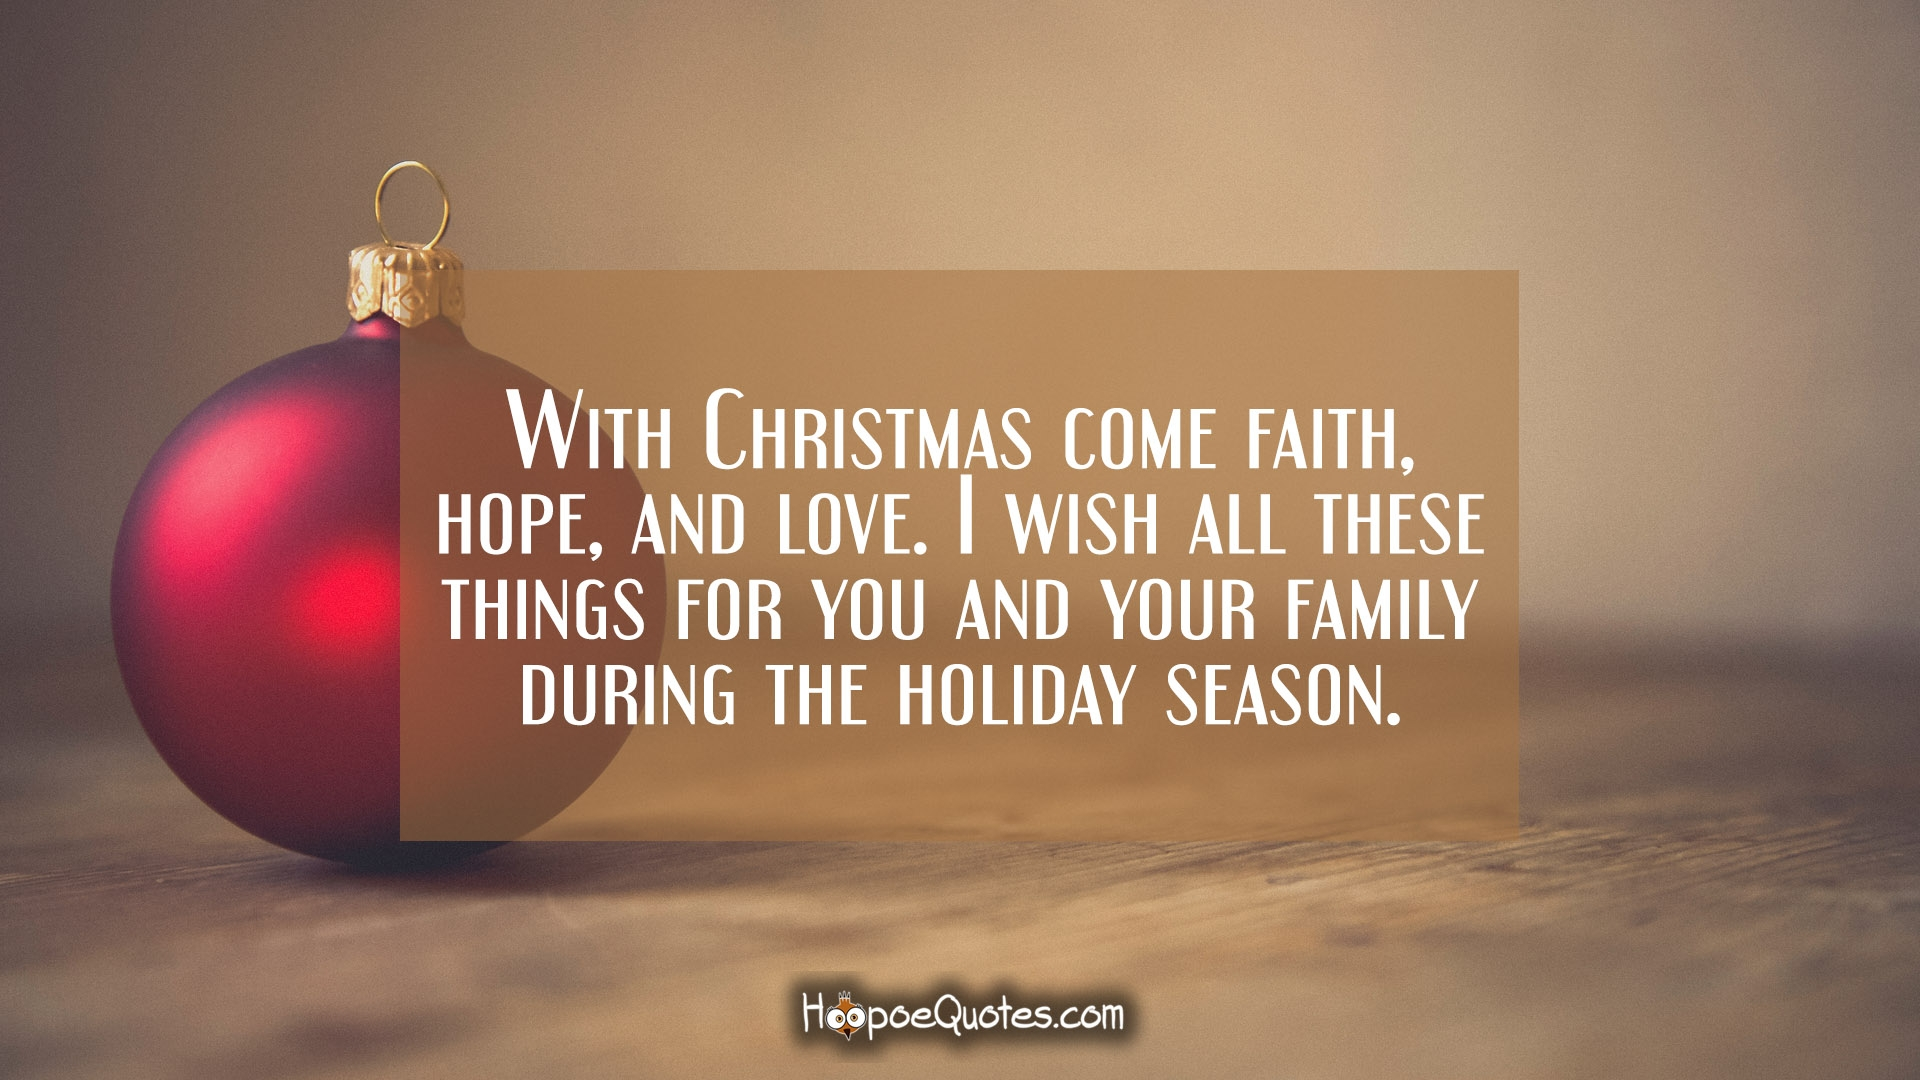 Holiday Wishes Quotes Merry Christmas Wishes  Hoopoequotes